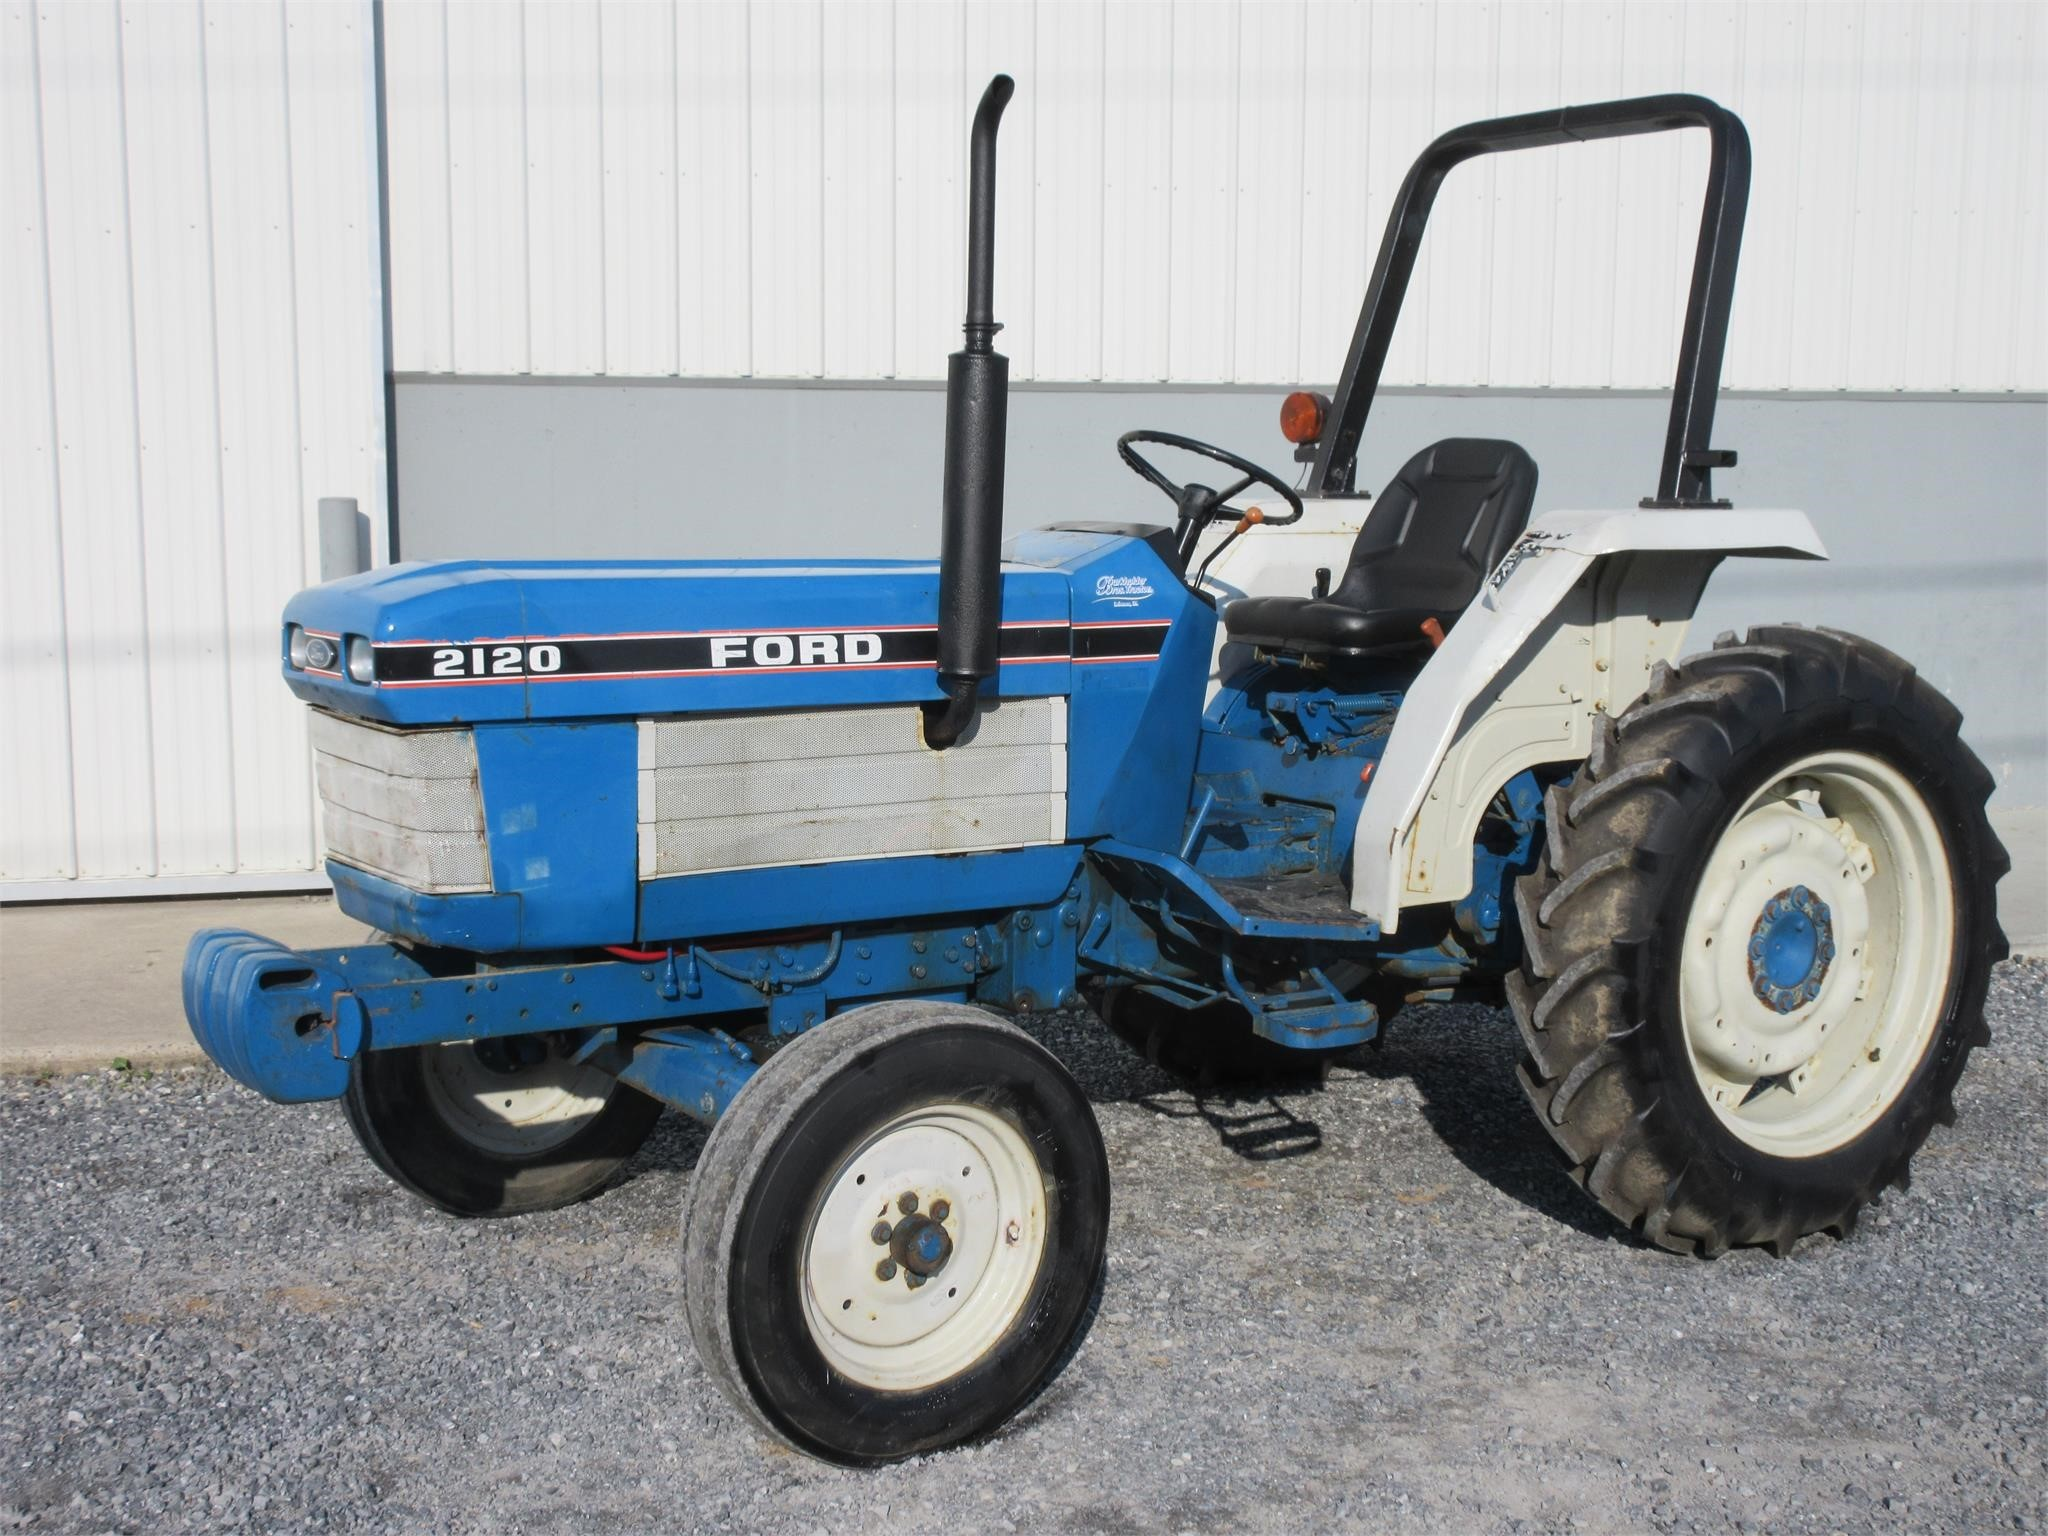 1990 Ford 2120 Tractor